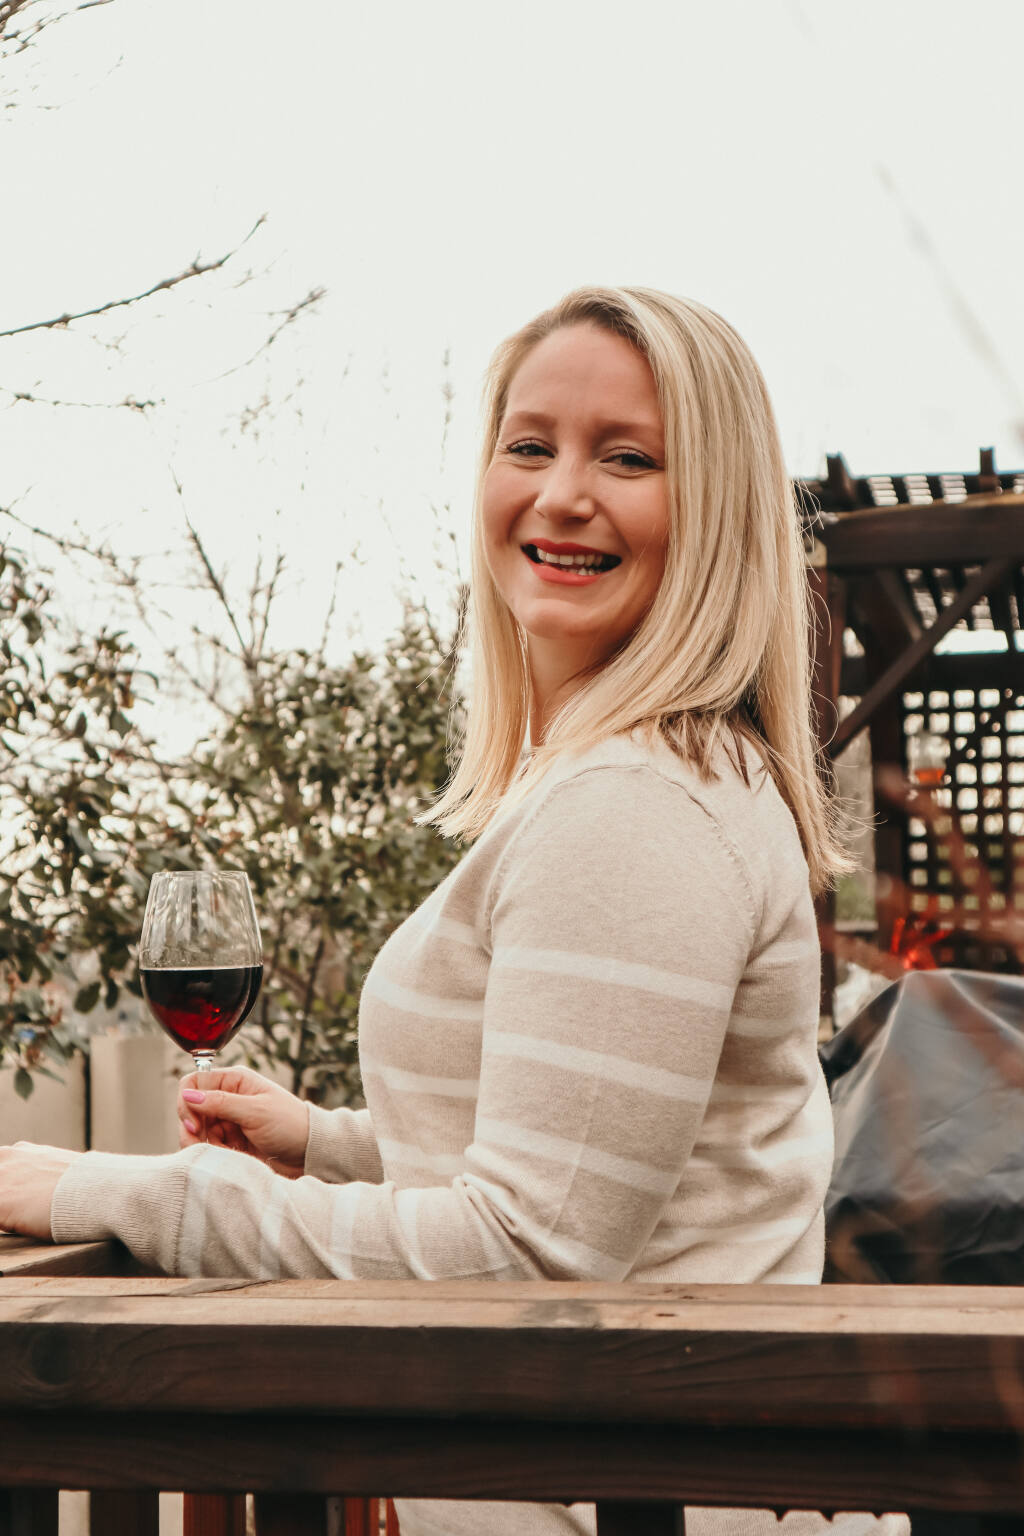 Natalie Owdom, 29, general manager, Muscardini Cellars, Kenwood, is a North Bay Business Journal 2021 Forty Under 40 winner.